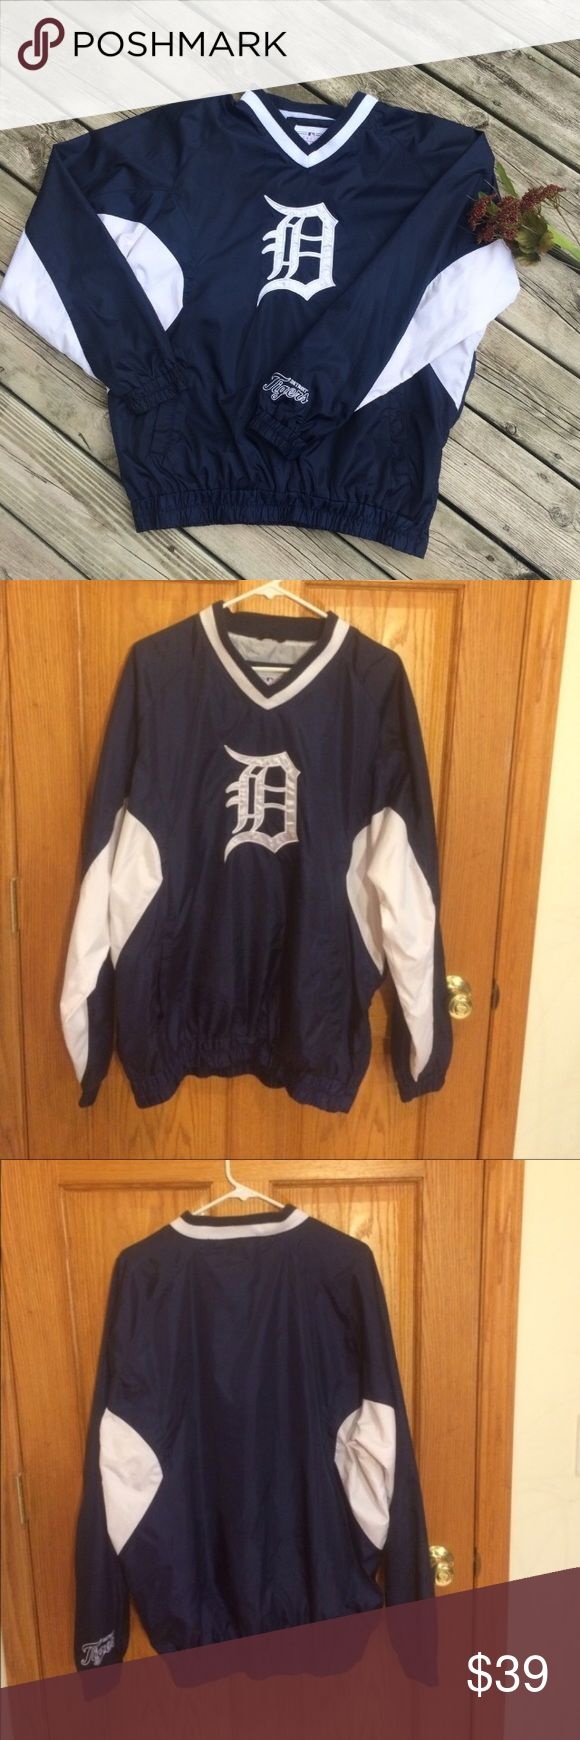 """Genuine Mechandise Detroit Tigers Windbreaker This is an authentic """"genuine merchandise"""" MLB Detroit Tigers Pullover windbreaker. Two front pockets and quarter zipper on the lower left side. 100% polyester. Excellent condition!! R3 Genuine Merchandise Jackets & Coats Windbreakers"""